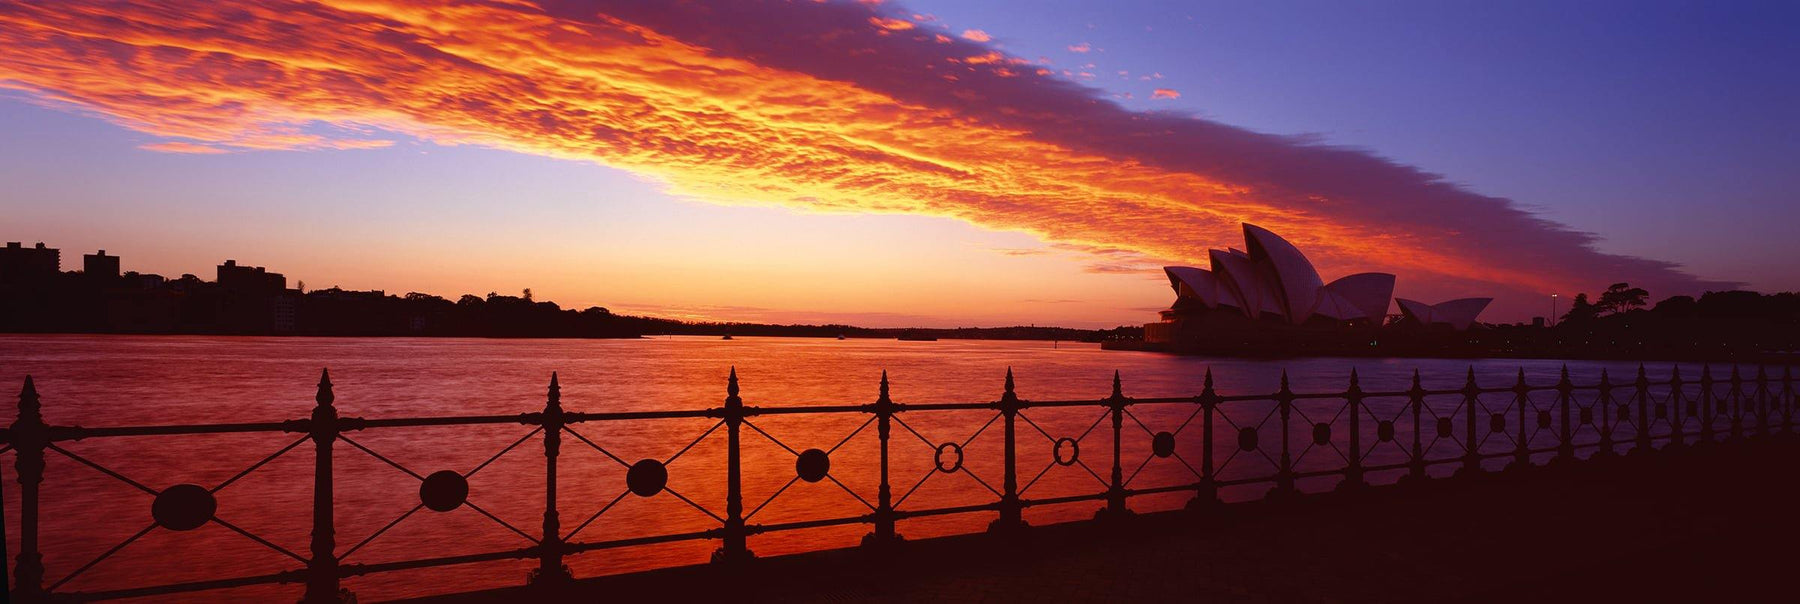 Rod iron fence at the edge of Sydney Harbor during the sunset glow with Sydney Opera House in the background